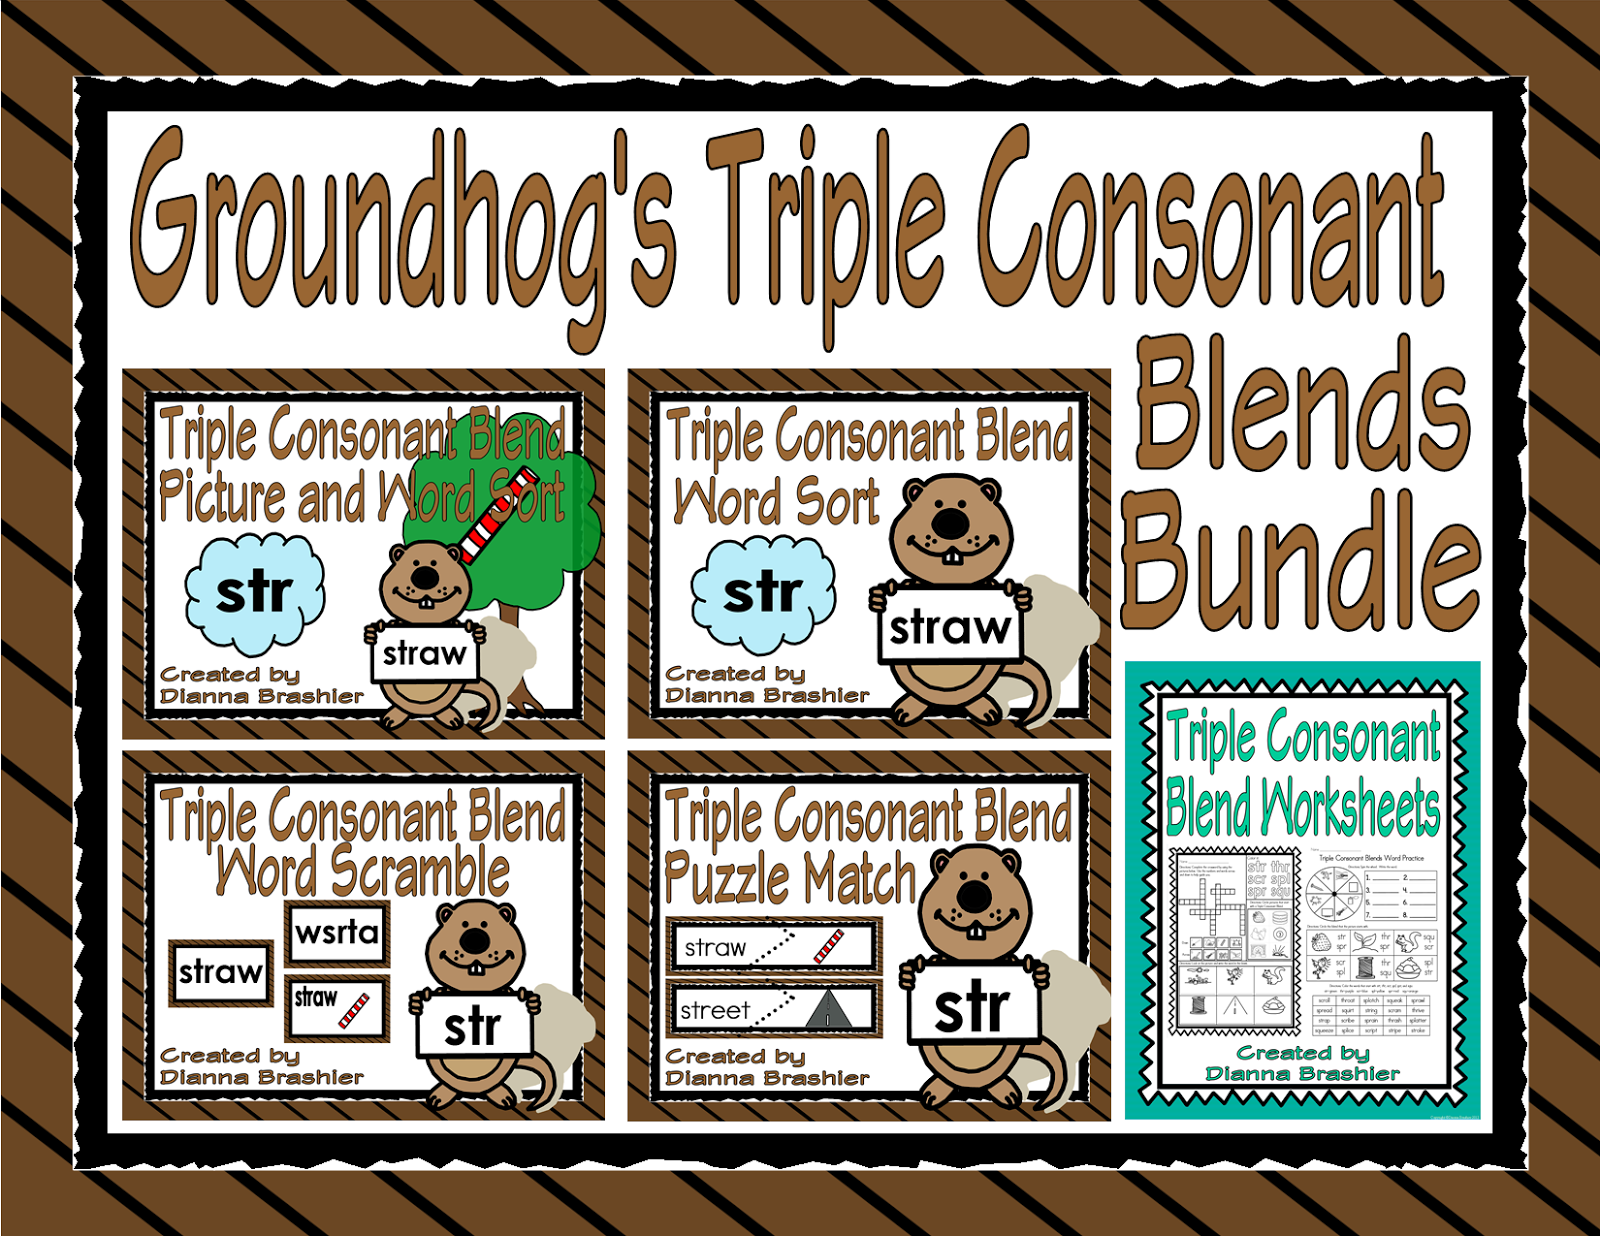 Teachers R Us Groundhog S Triple Consonant Blends Literacy Bundle With Assessment